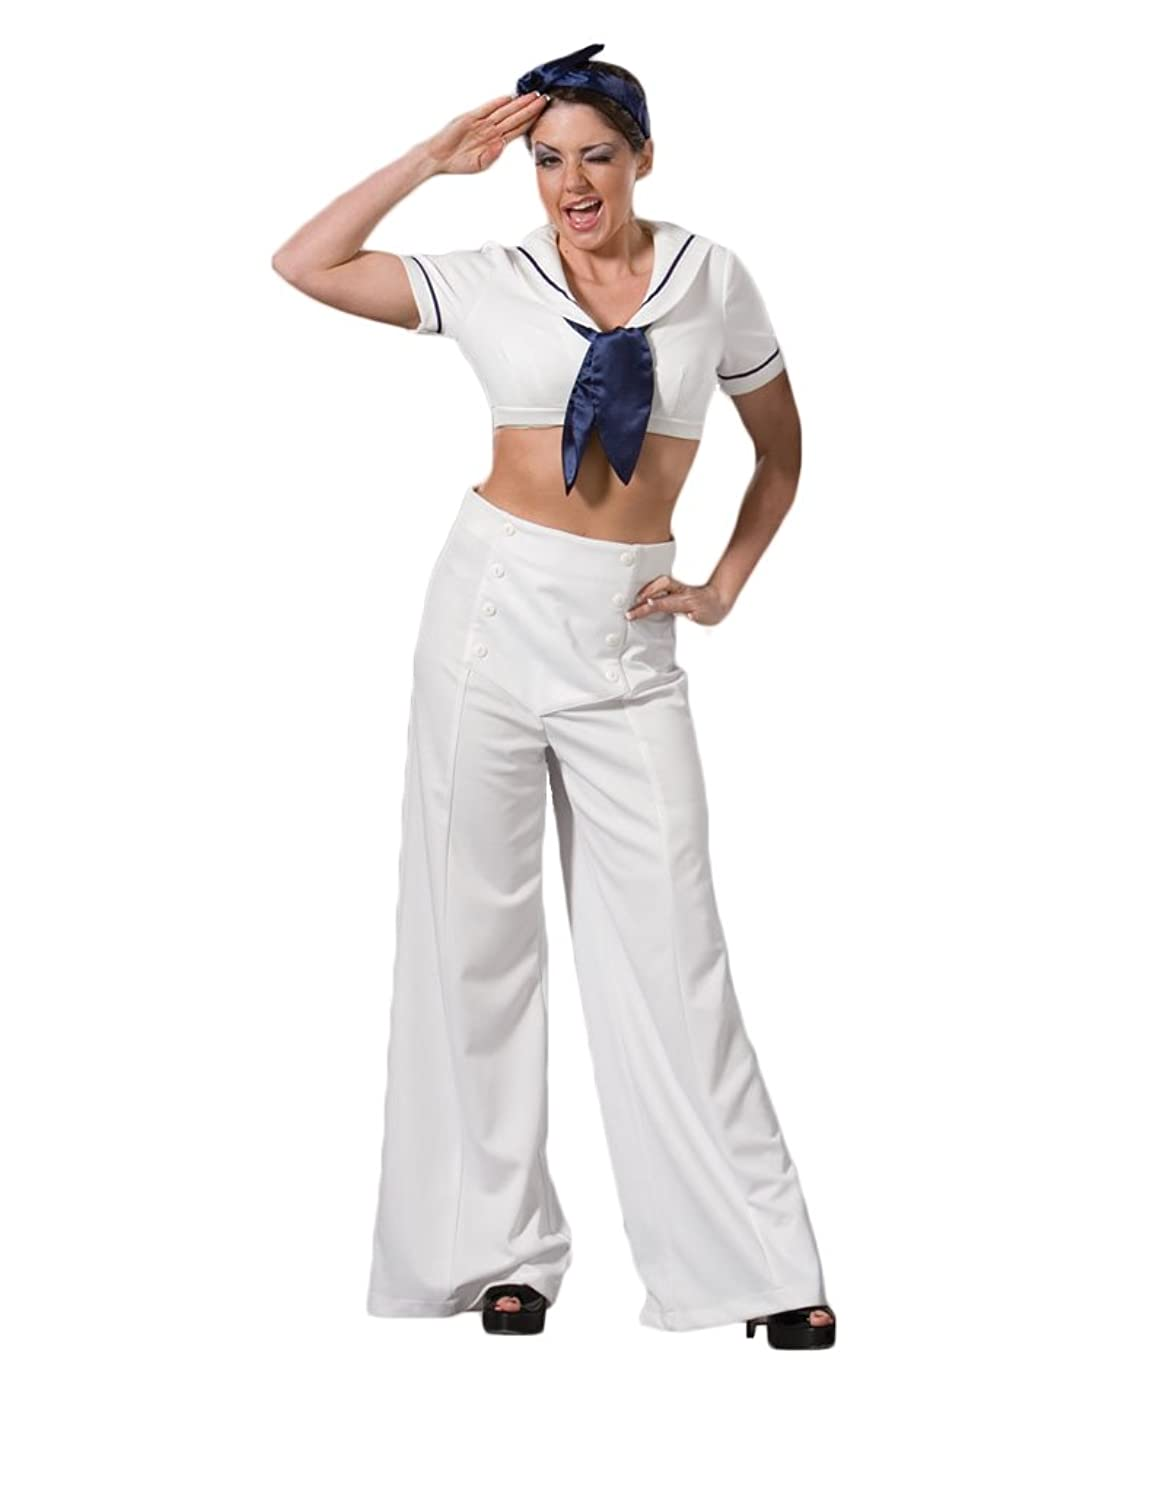 Vintage High Waisted Trousers, Sailor Pants, Jeans Navy Sailor World War II Pin-Up Girl Theater Costume $149.99 AT vintagedancer.com